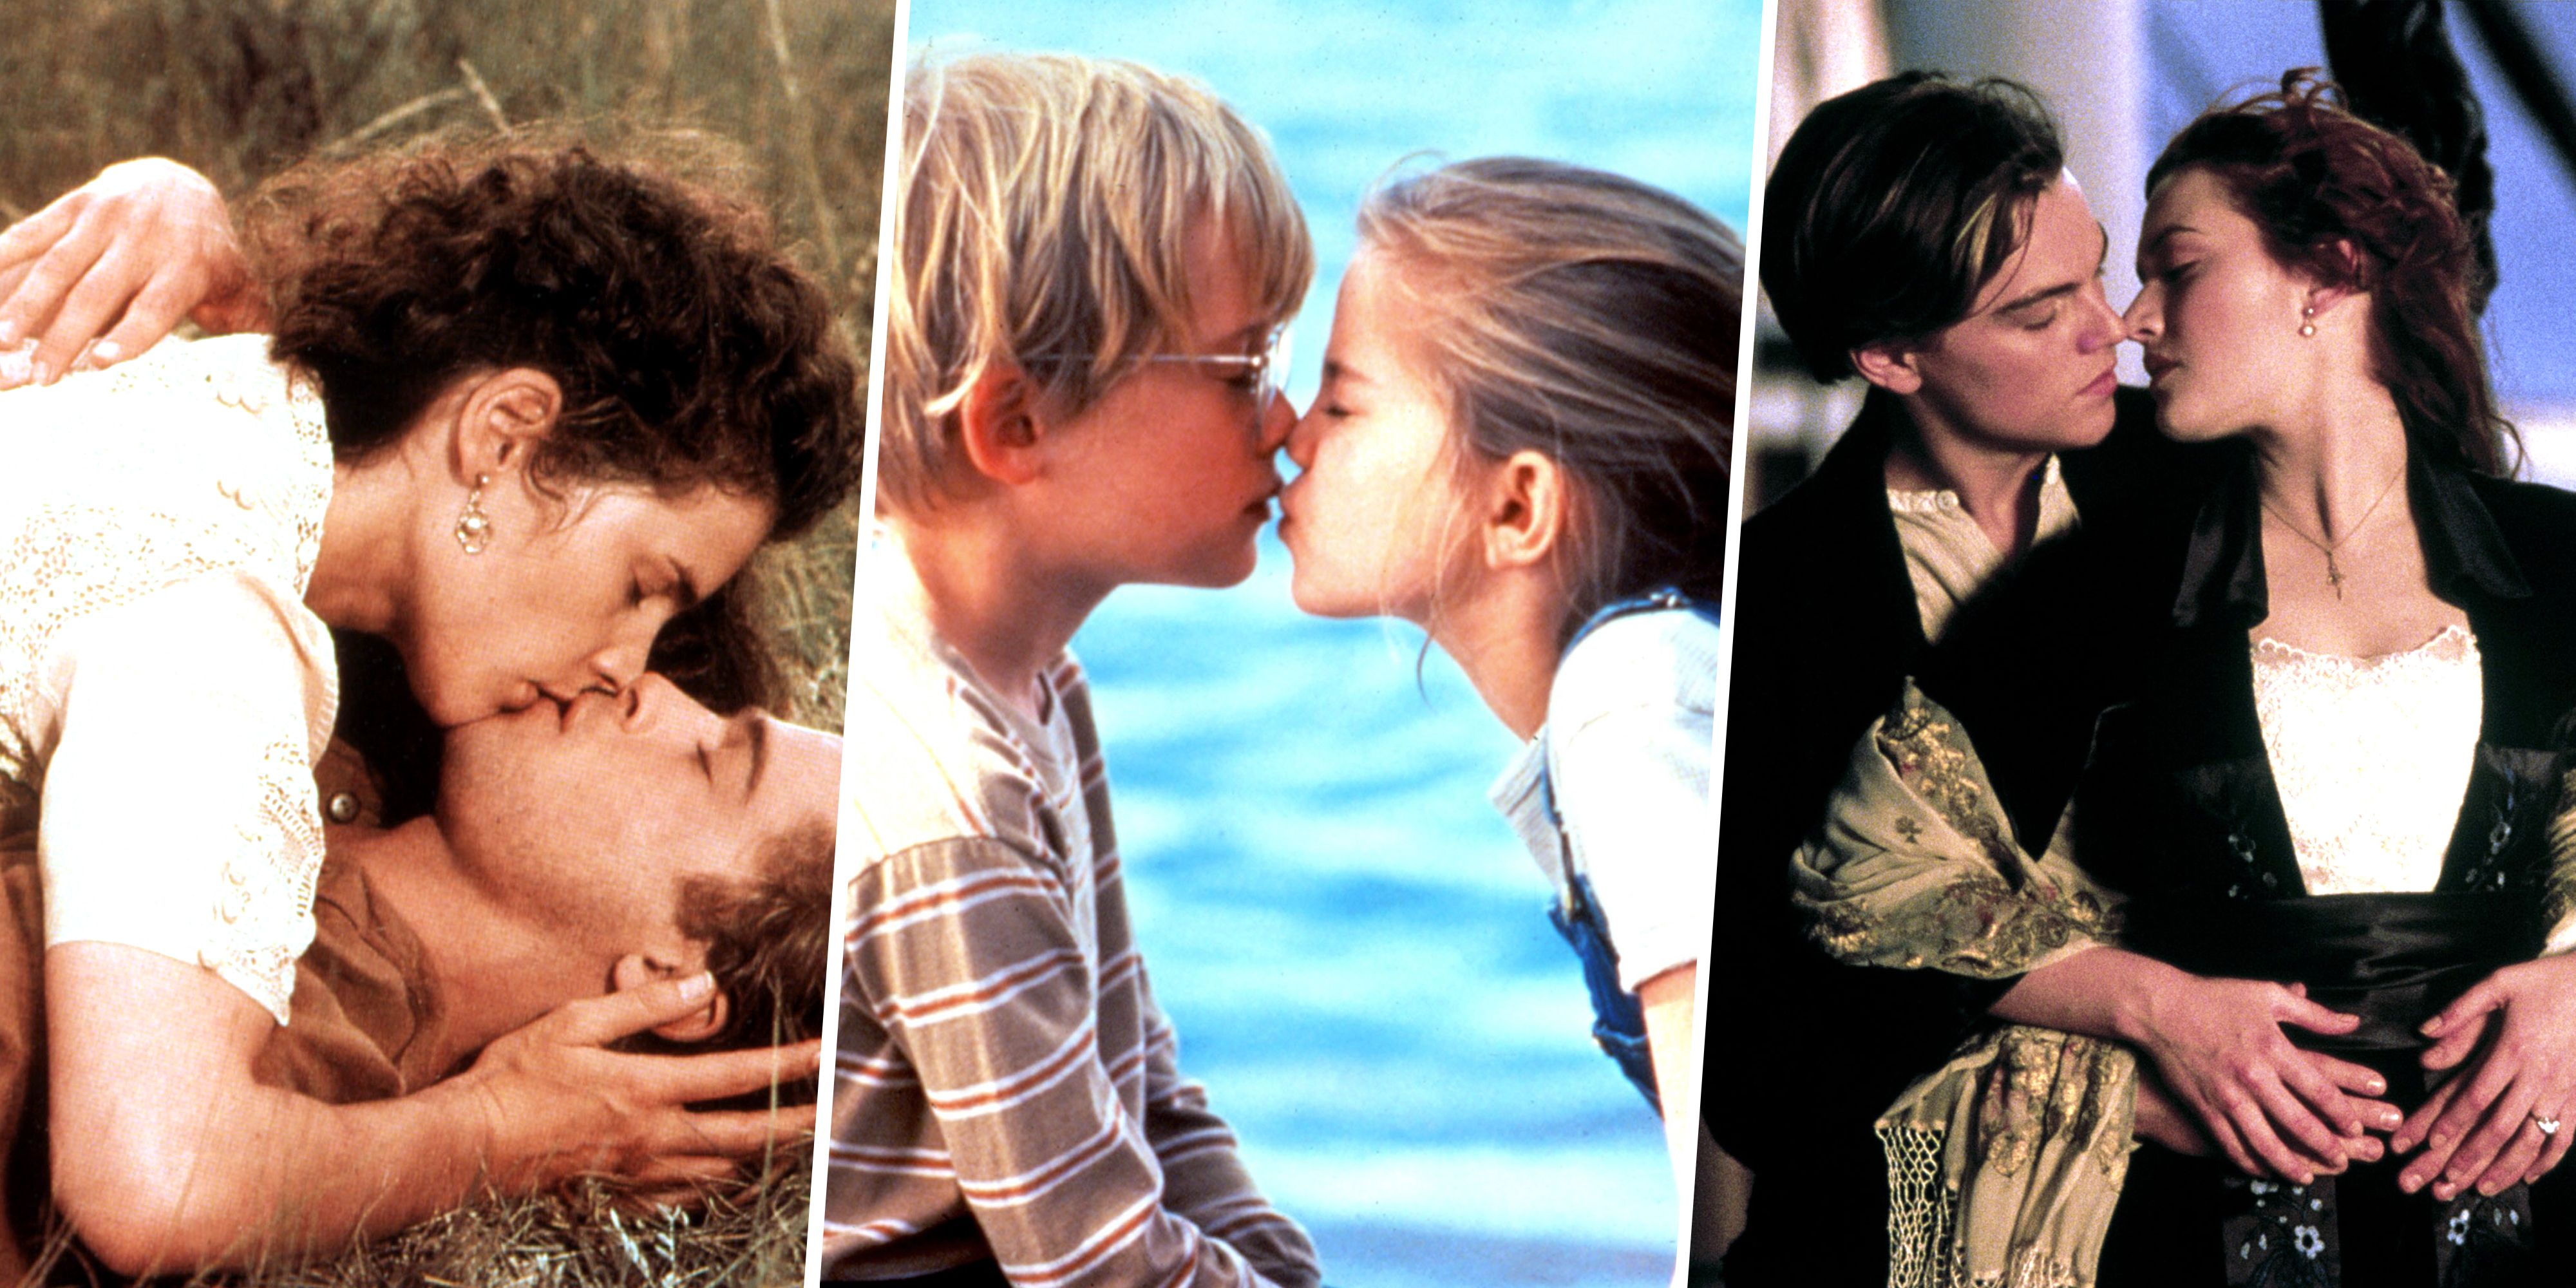 15 Sad Movies for When You Need Something to Cry About